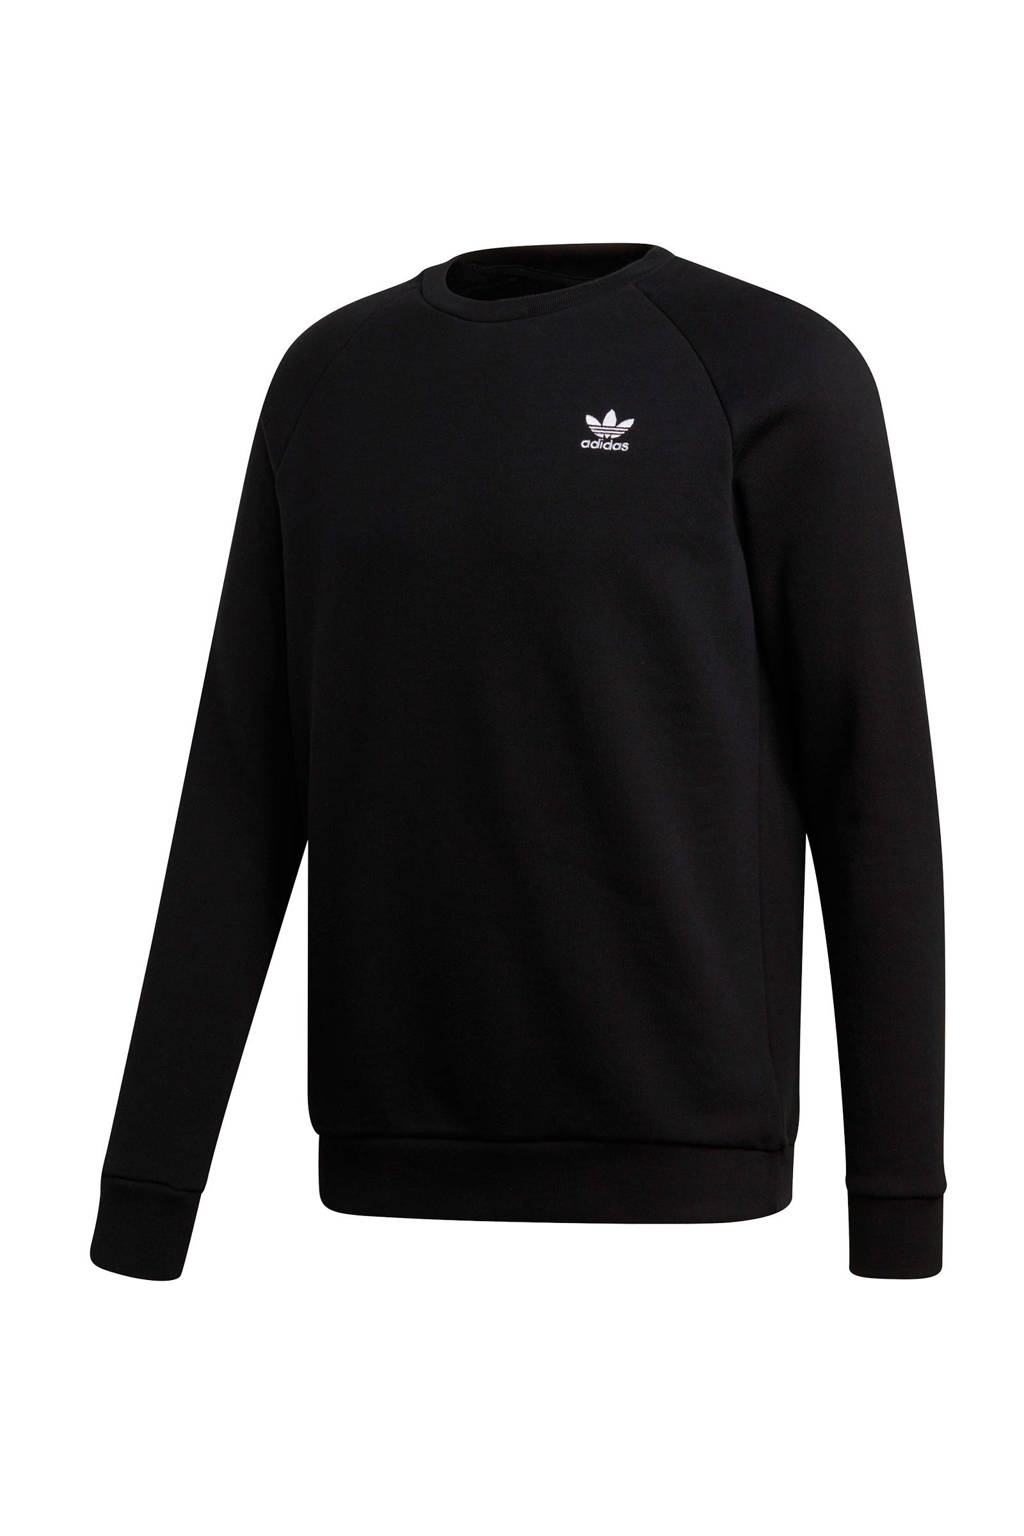 adidas originals   sweater zwart, Zwart